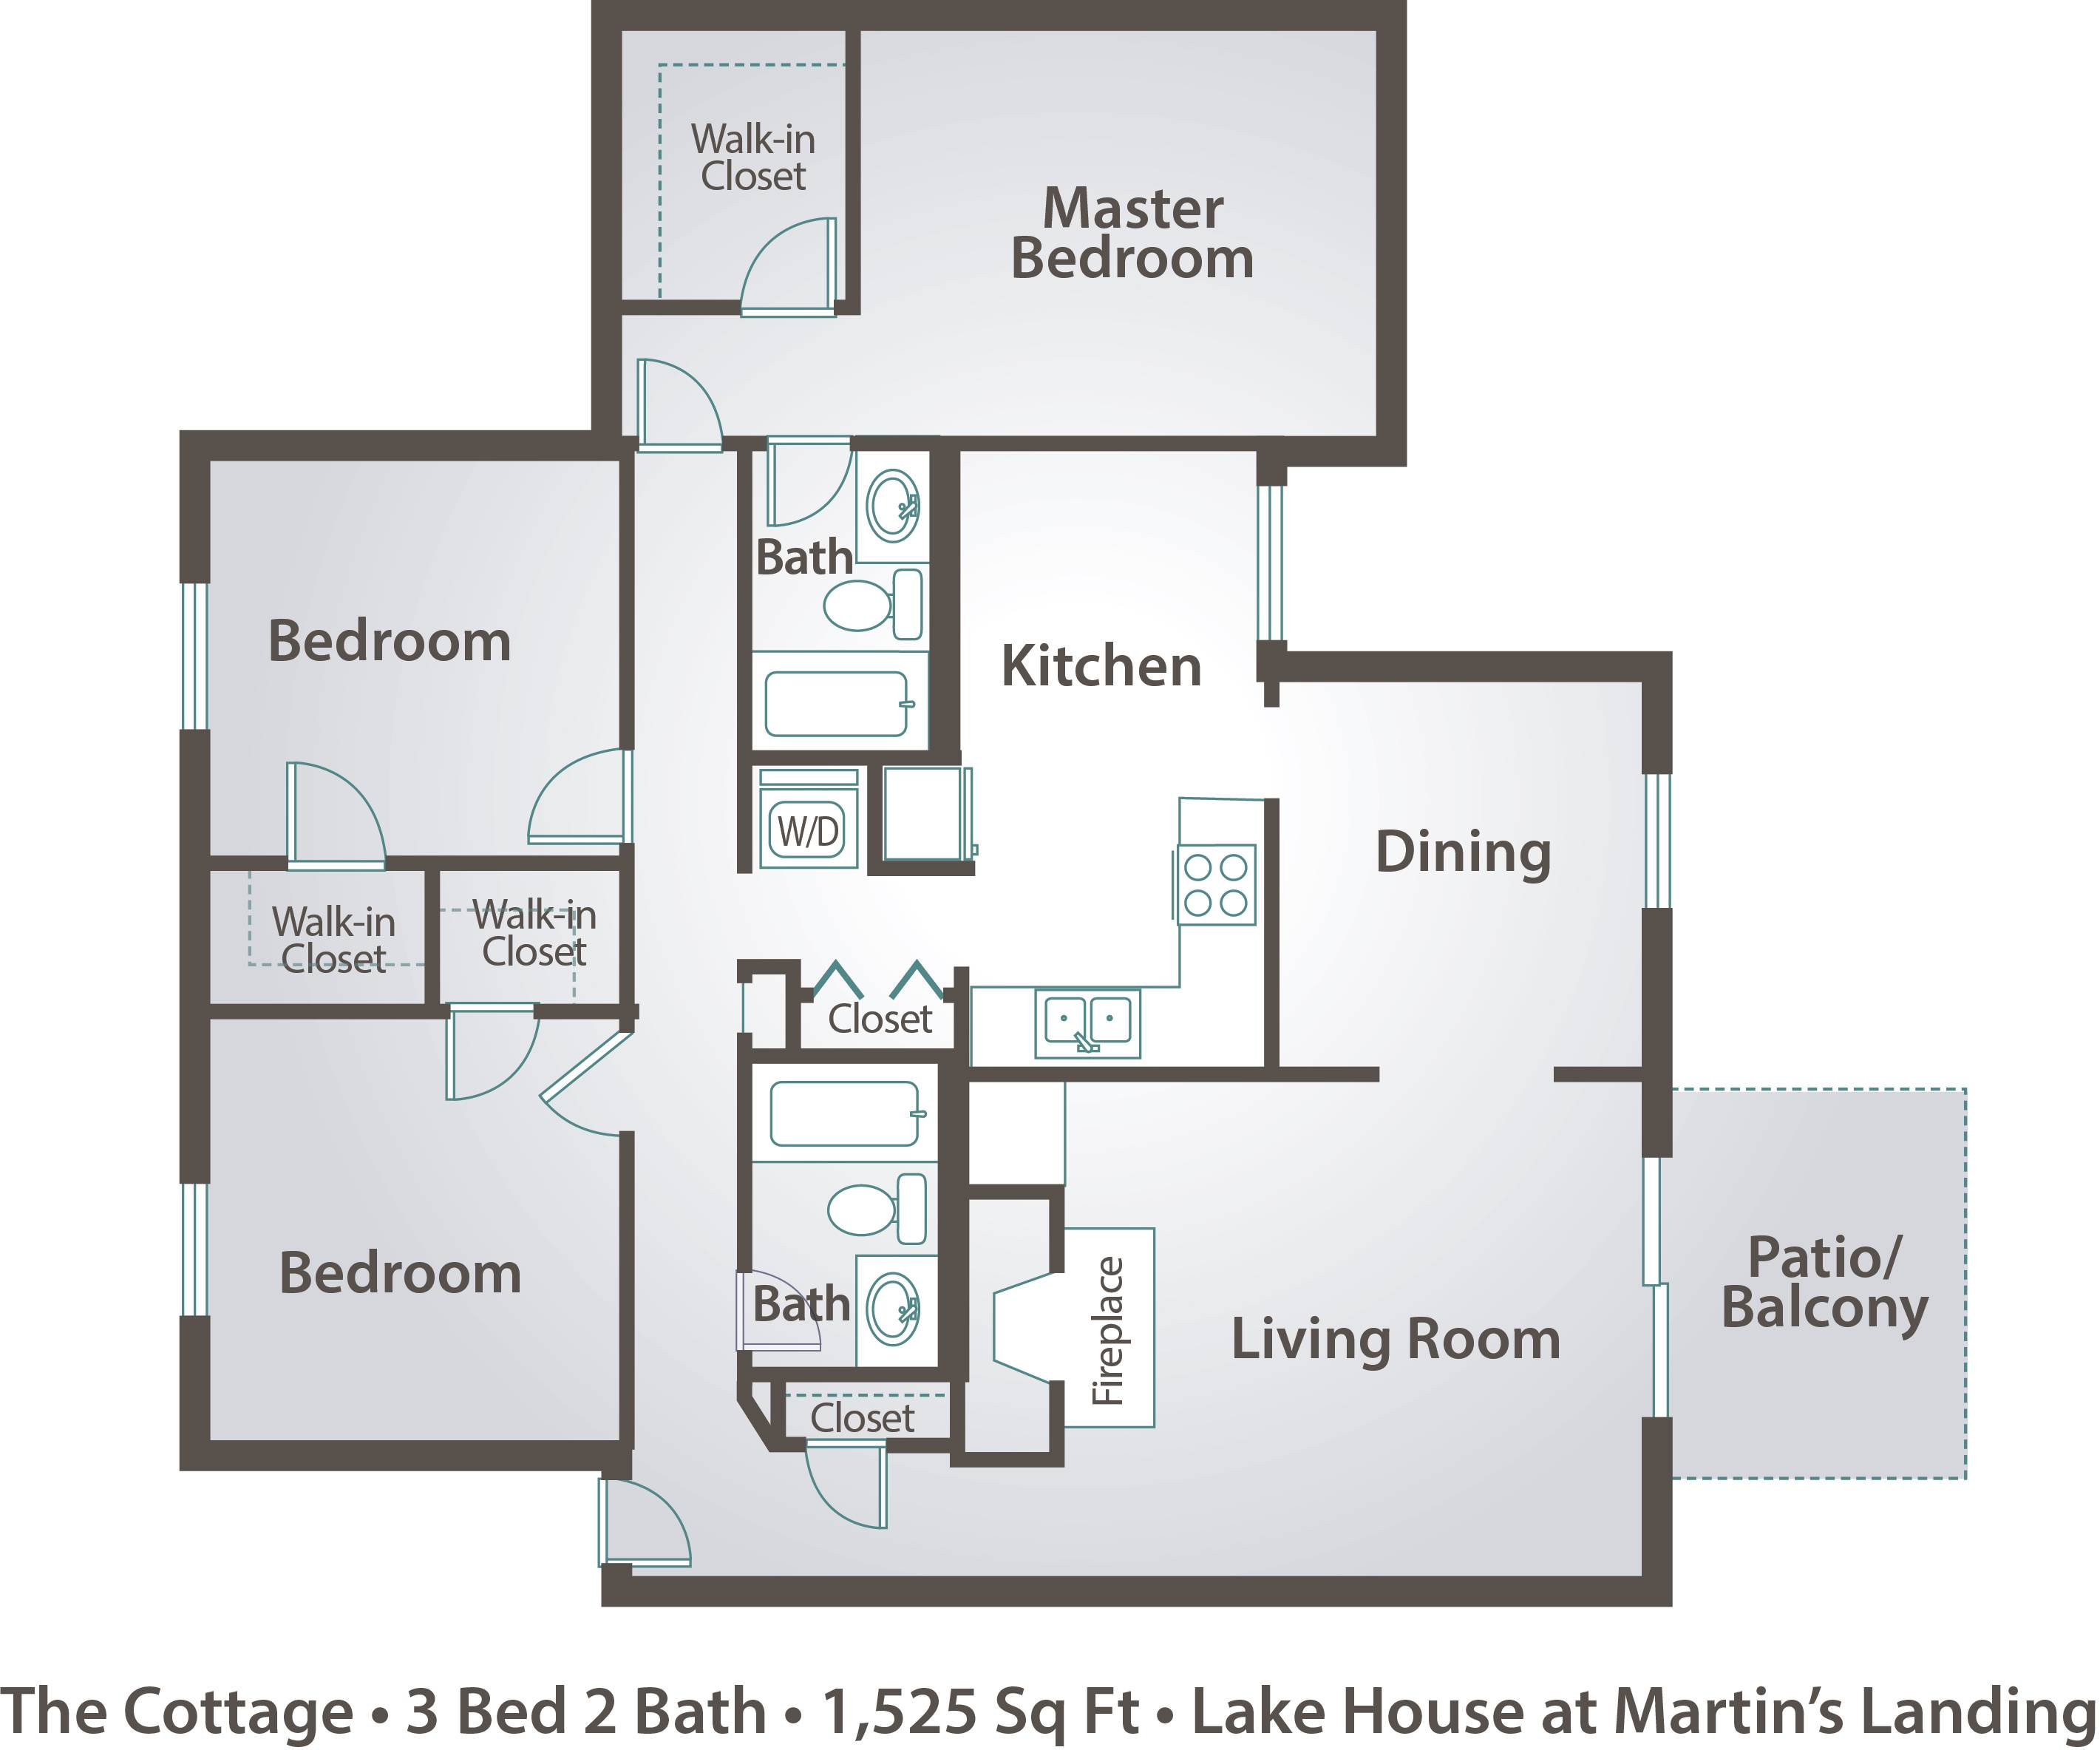 Apartment floor plans pricing the lake house at martin s landing in roswell ga 3 bedroom 3 bath floor plans